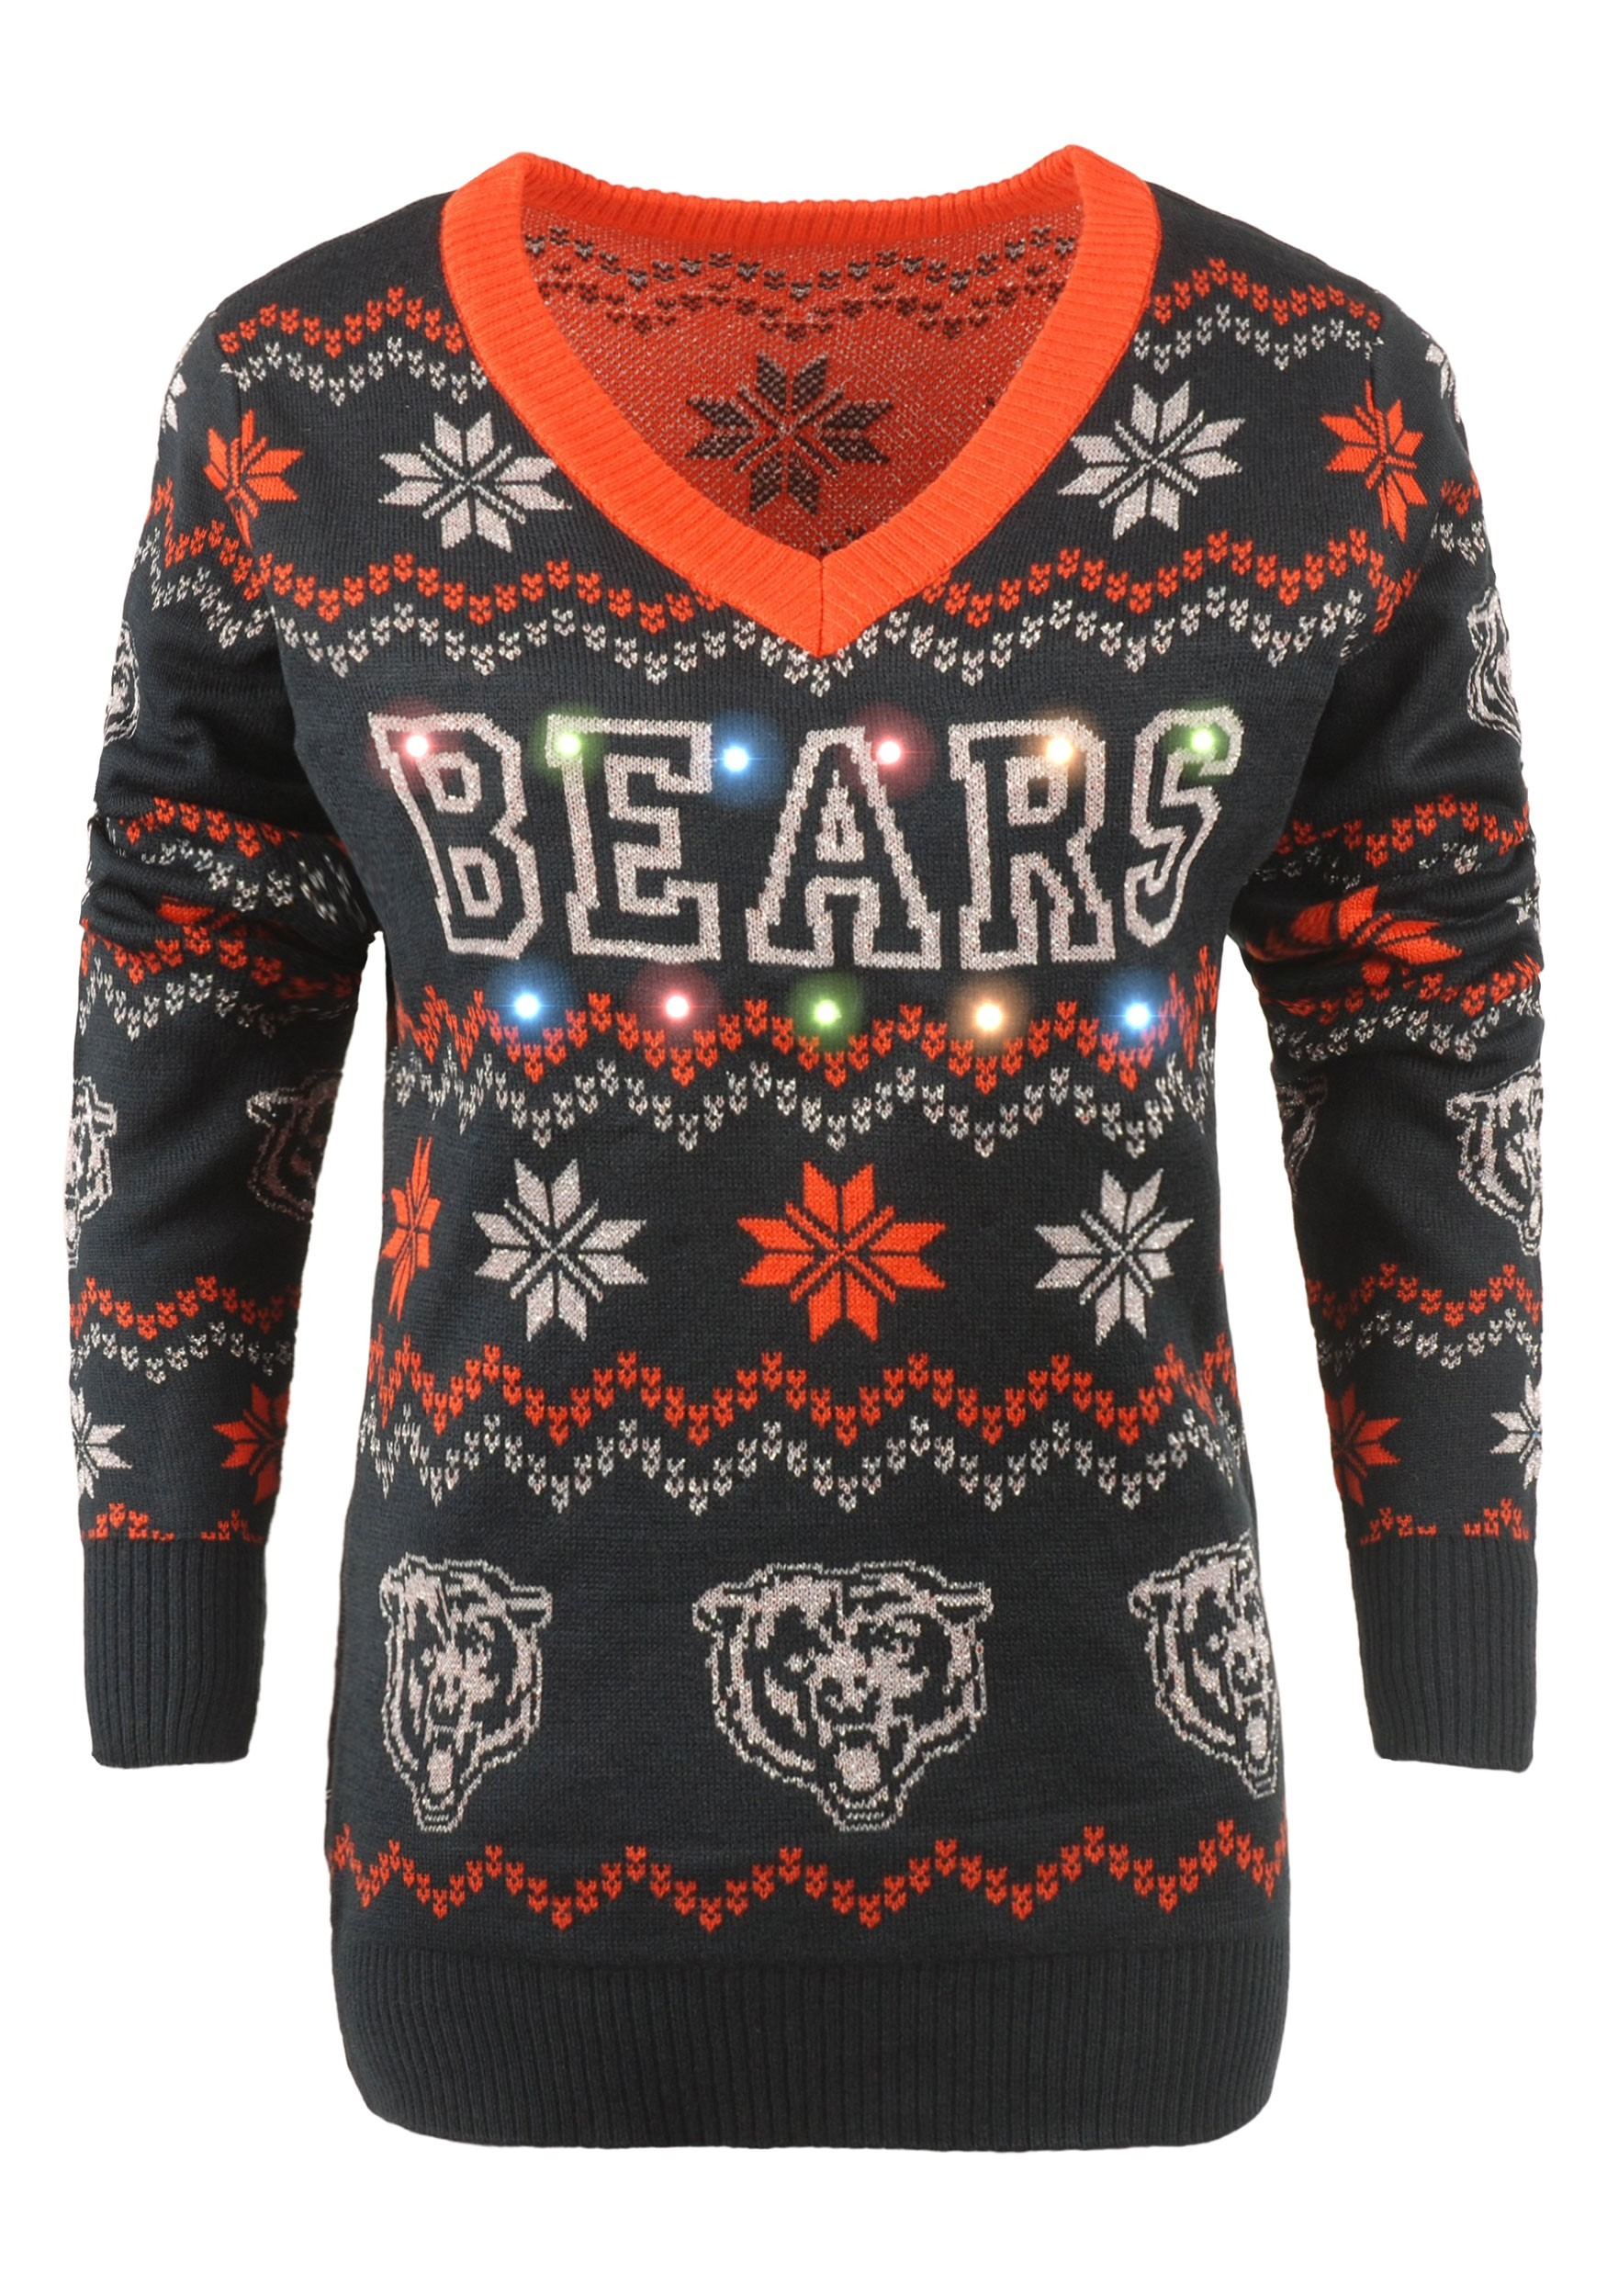 16975c52cb7 Chicago Bears Women's Light Up V-Neck Bluetooth Ugly Christmas Sweater